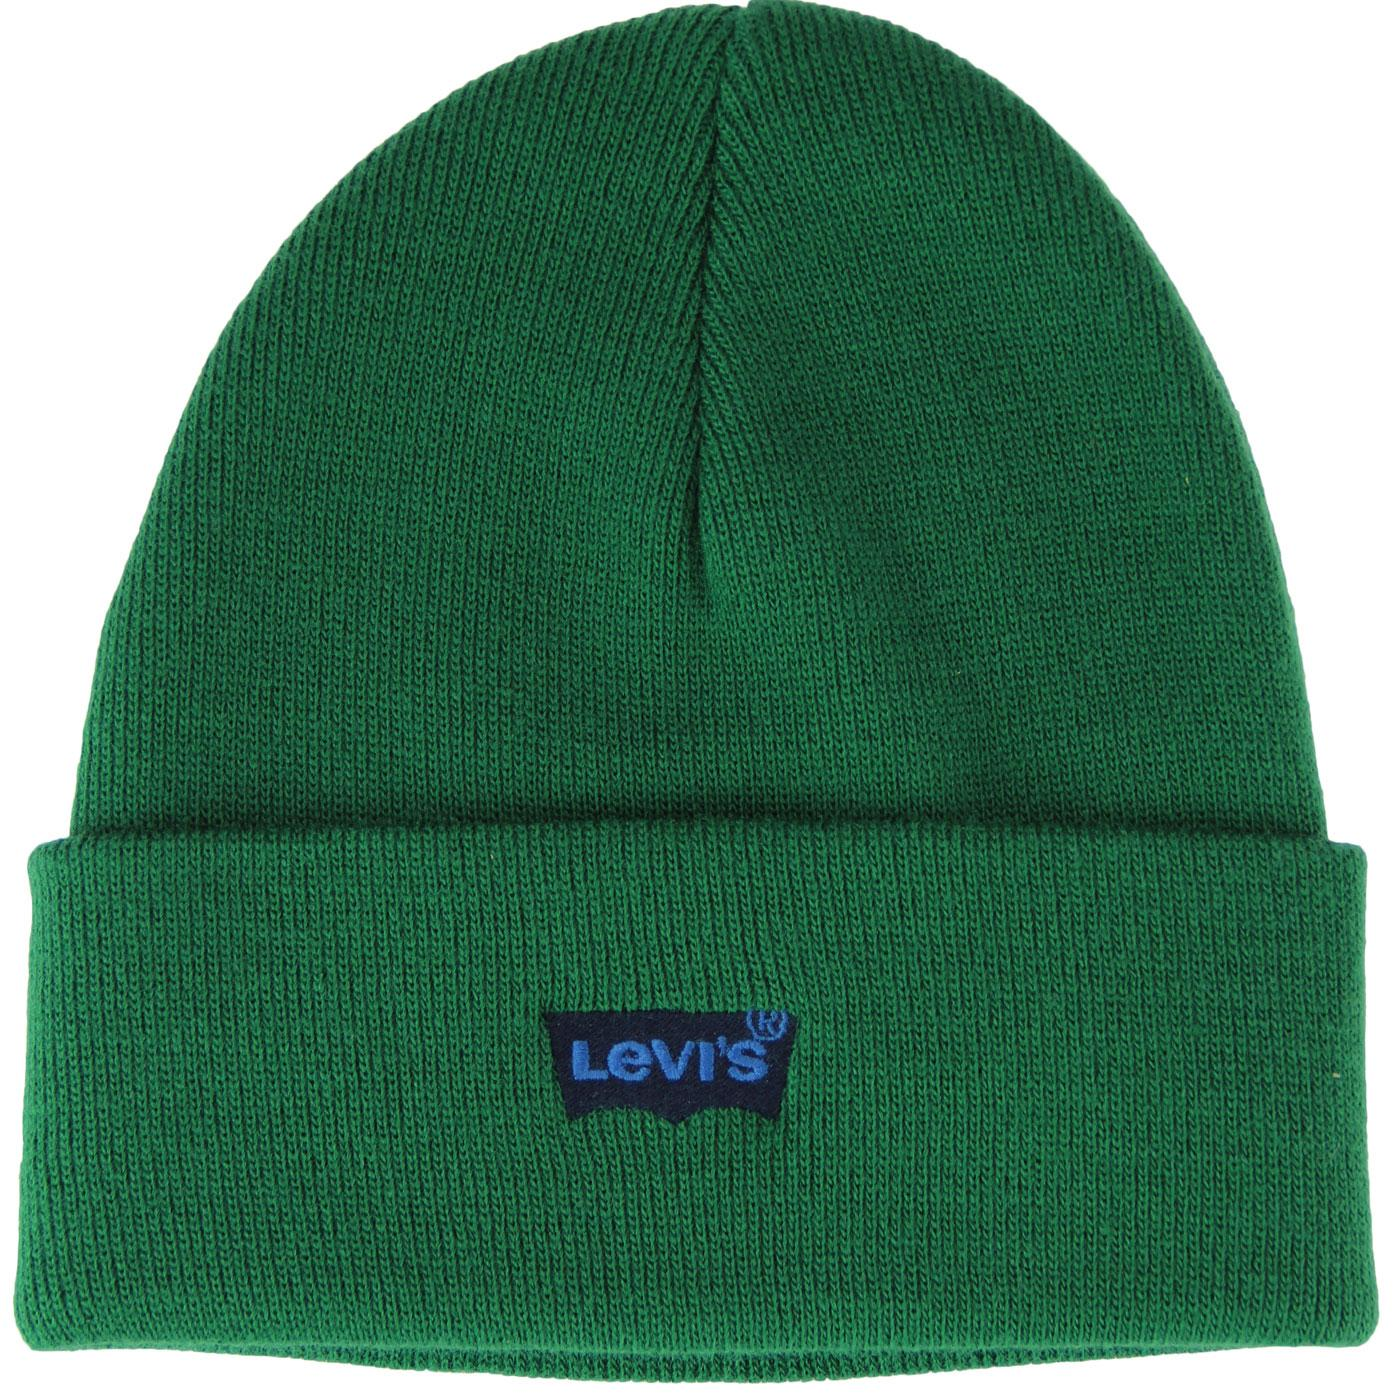 LEVI'S Retro Batwing Embroidered Knit Beanie Hat G